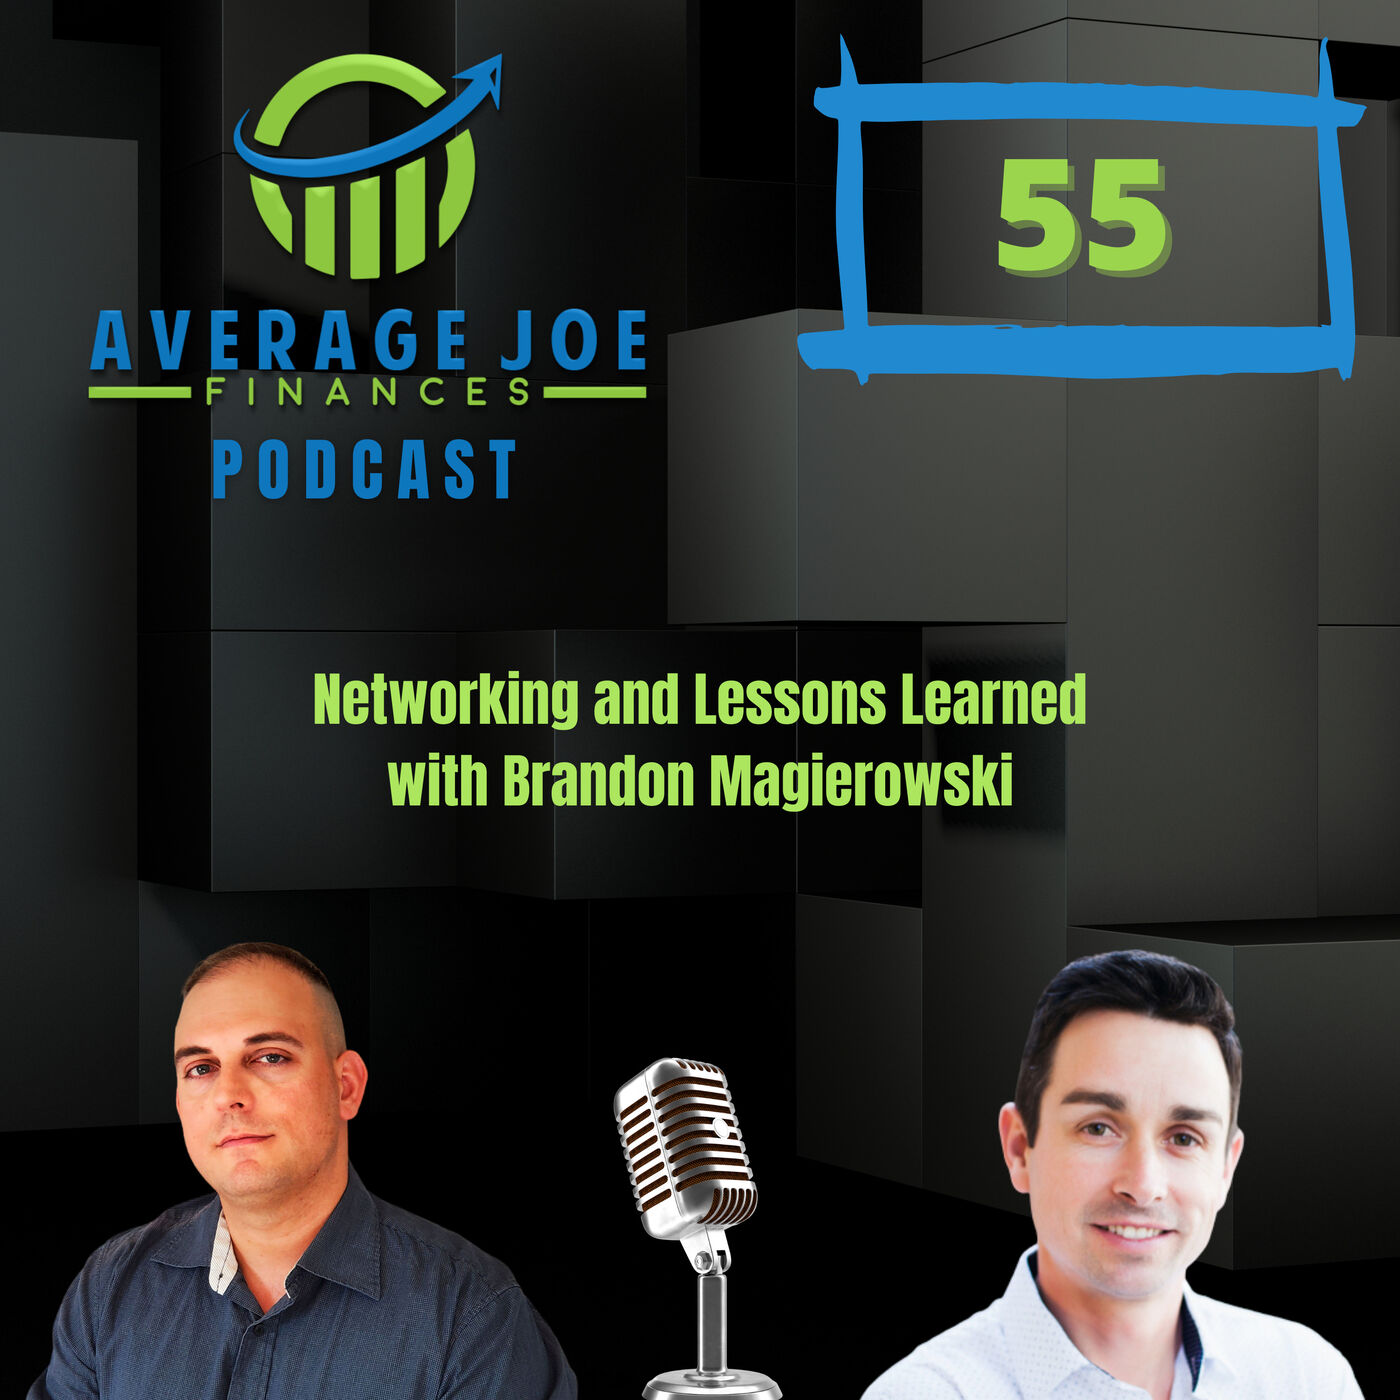 Ep 55 - Networking and Lessons Learned with Brandon Magierowski